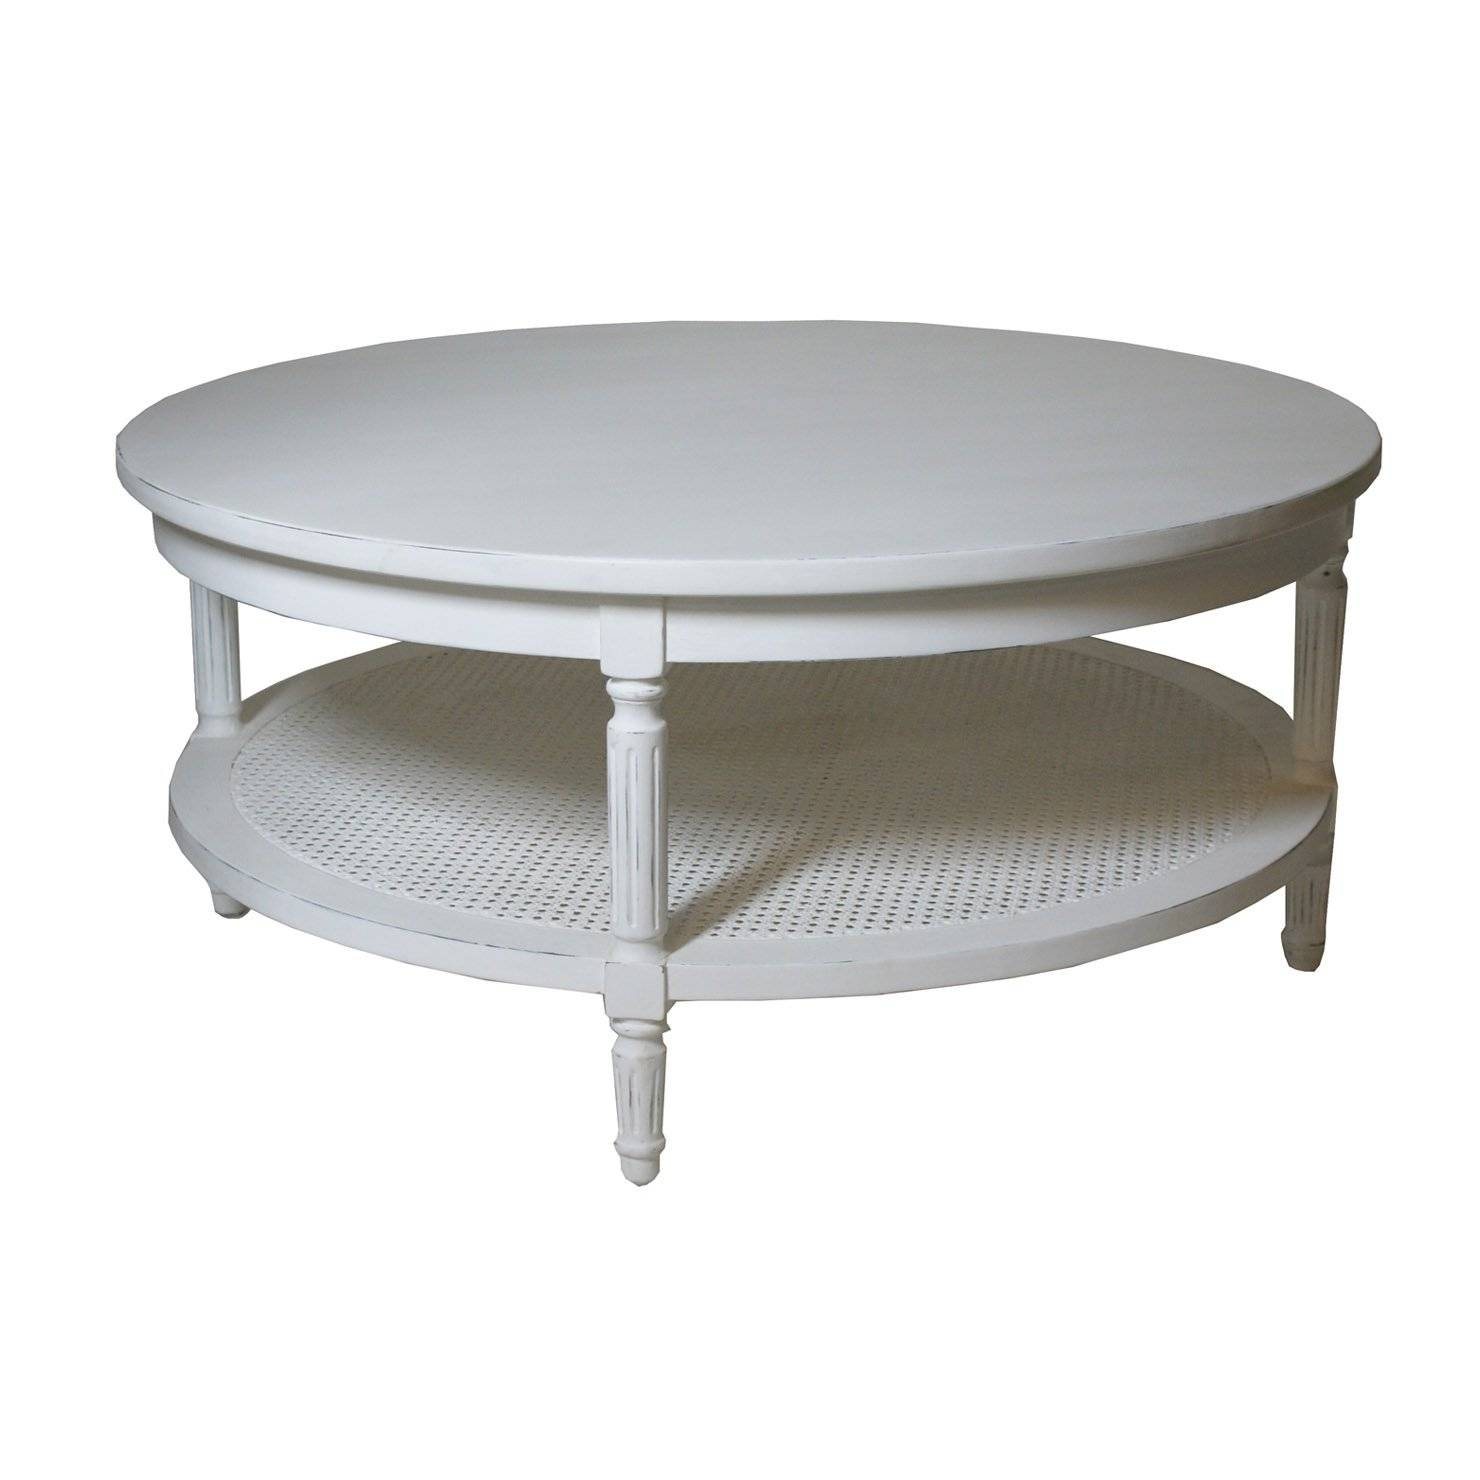 Furniture. White Wooden Round Coffee Table With Shelf With Big with Round Coffee Table Storages (Image 16 of 30)